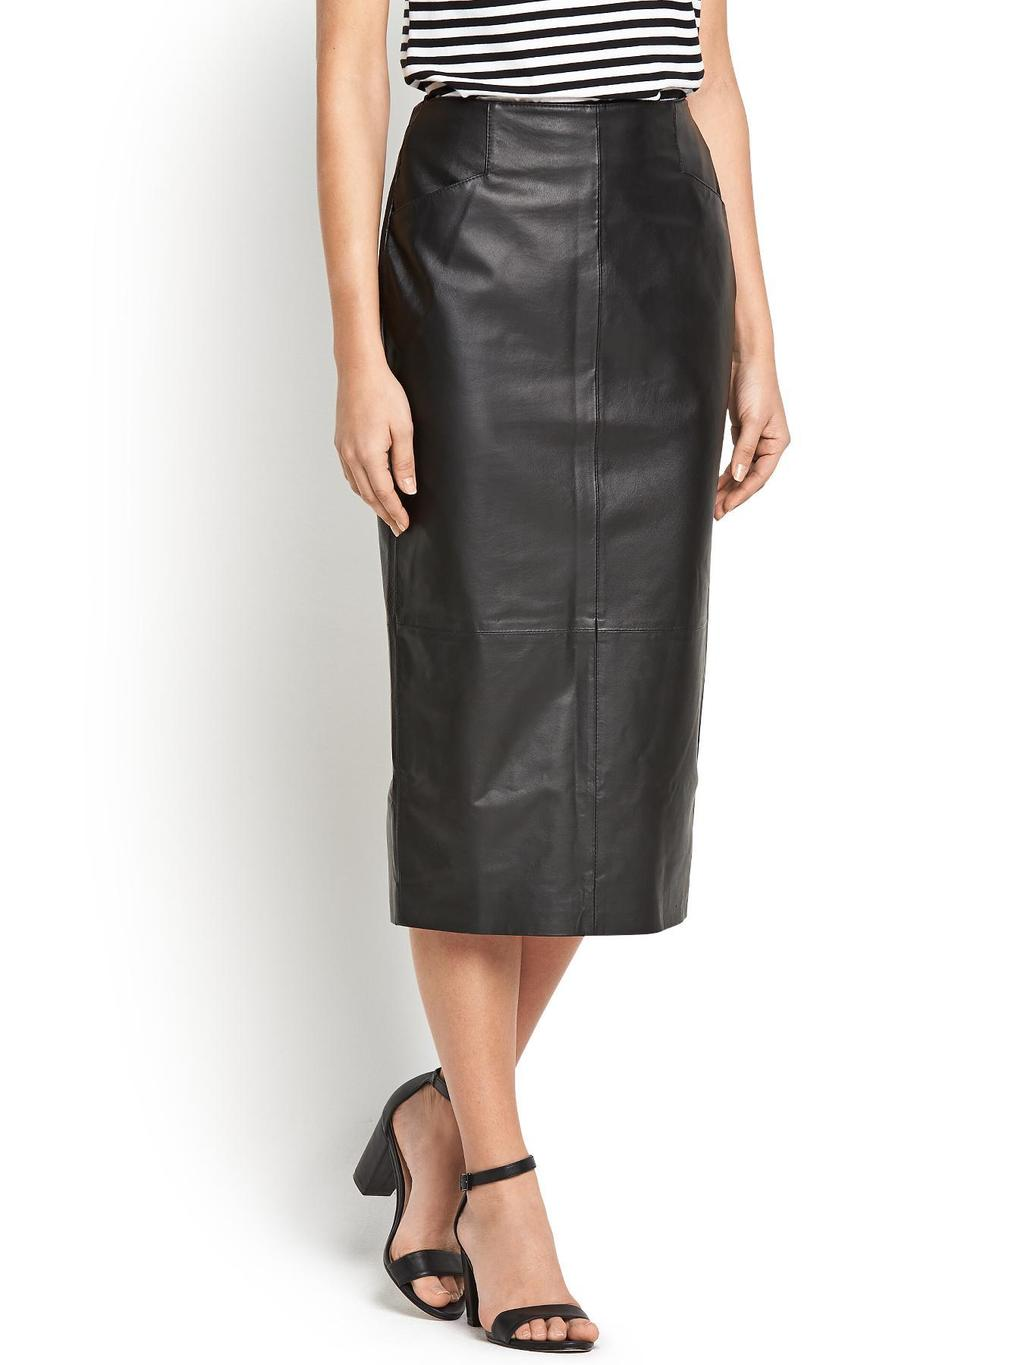 Leather Pencil Skirt, Black - length: below the knee; pattern: plain; style: pencil; fit: tailored/fitted; waist: high rise; predominant colour: black; occasions: casual, evening, creative work; fibres: leather - 100%; texture group: leather; pattern type: fabric; season: s/s 2014